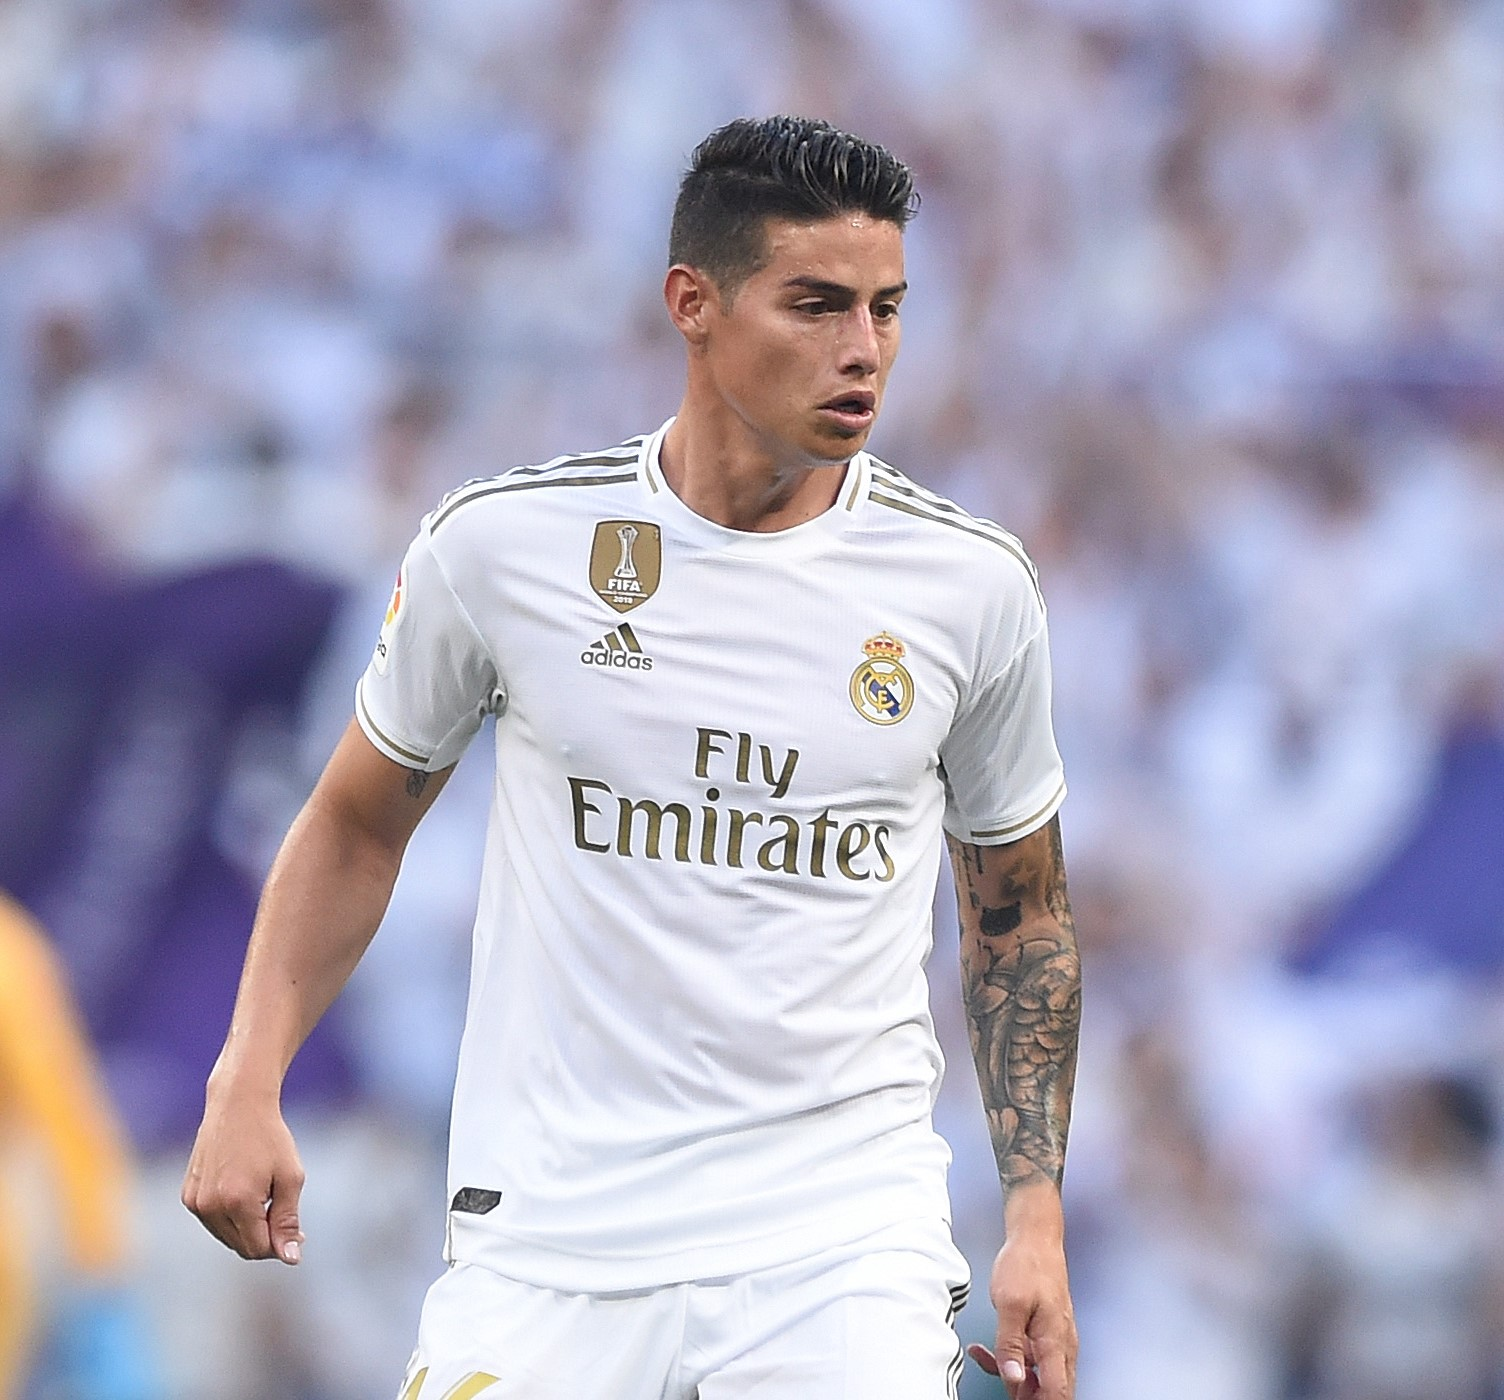 James Rodriguez veut quitter le Real Madrid - Fil Info - Transferts